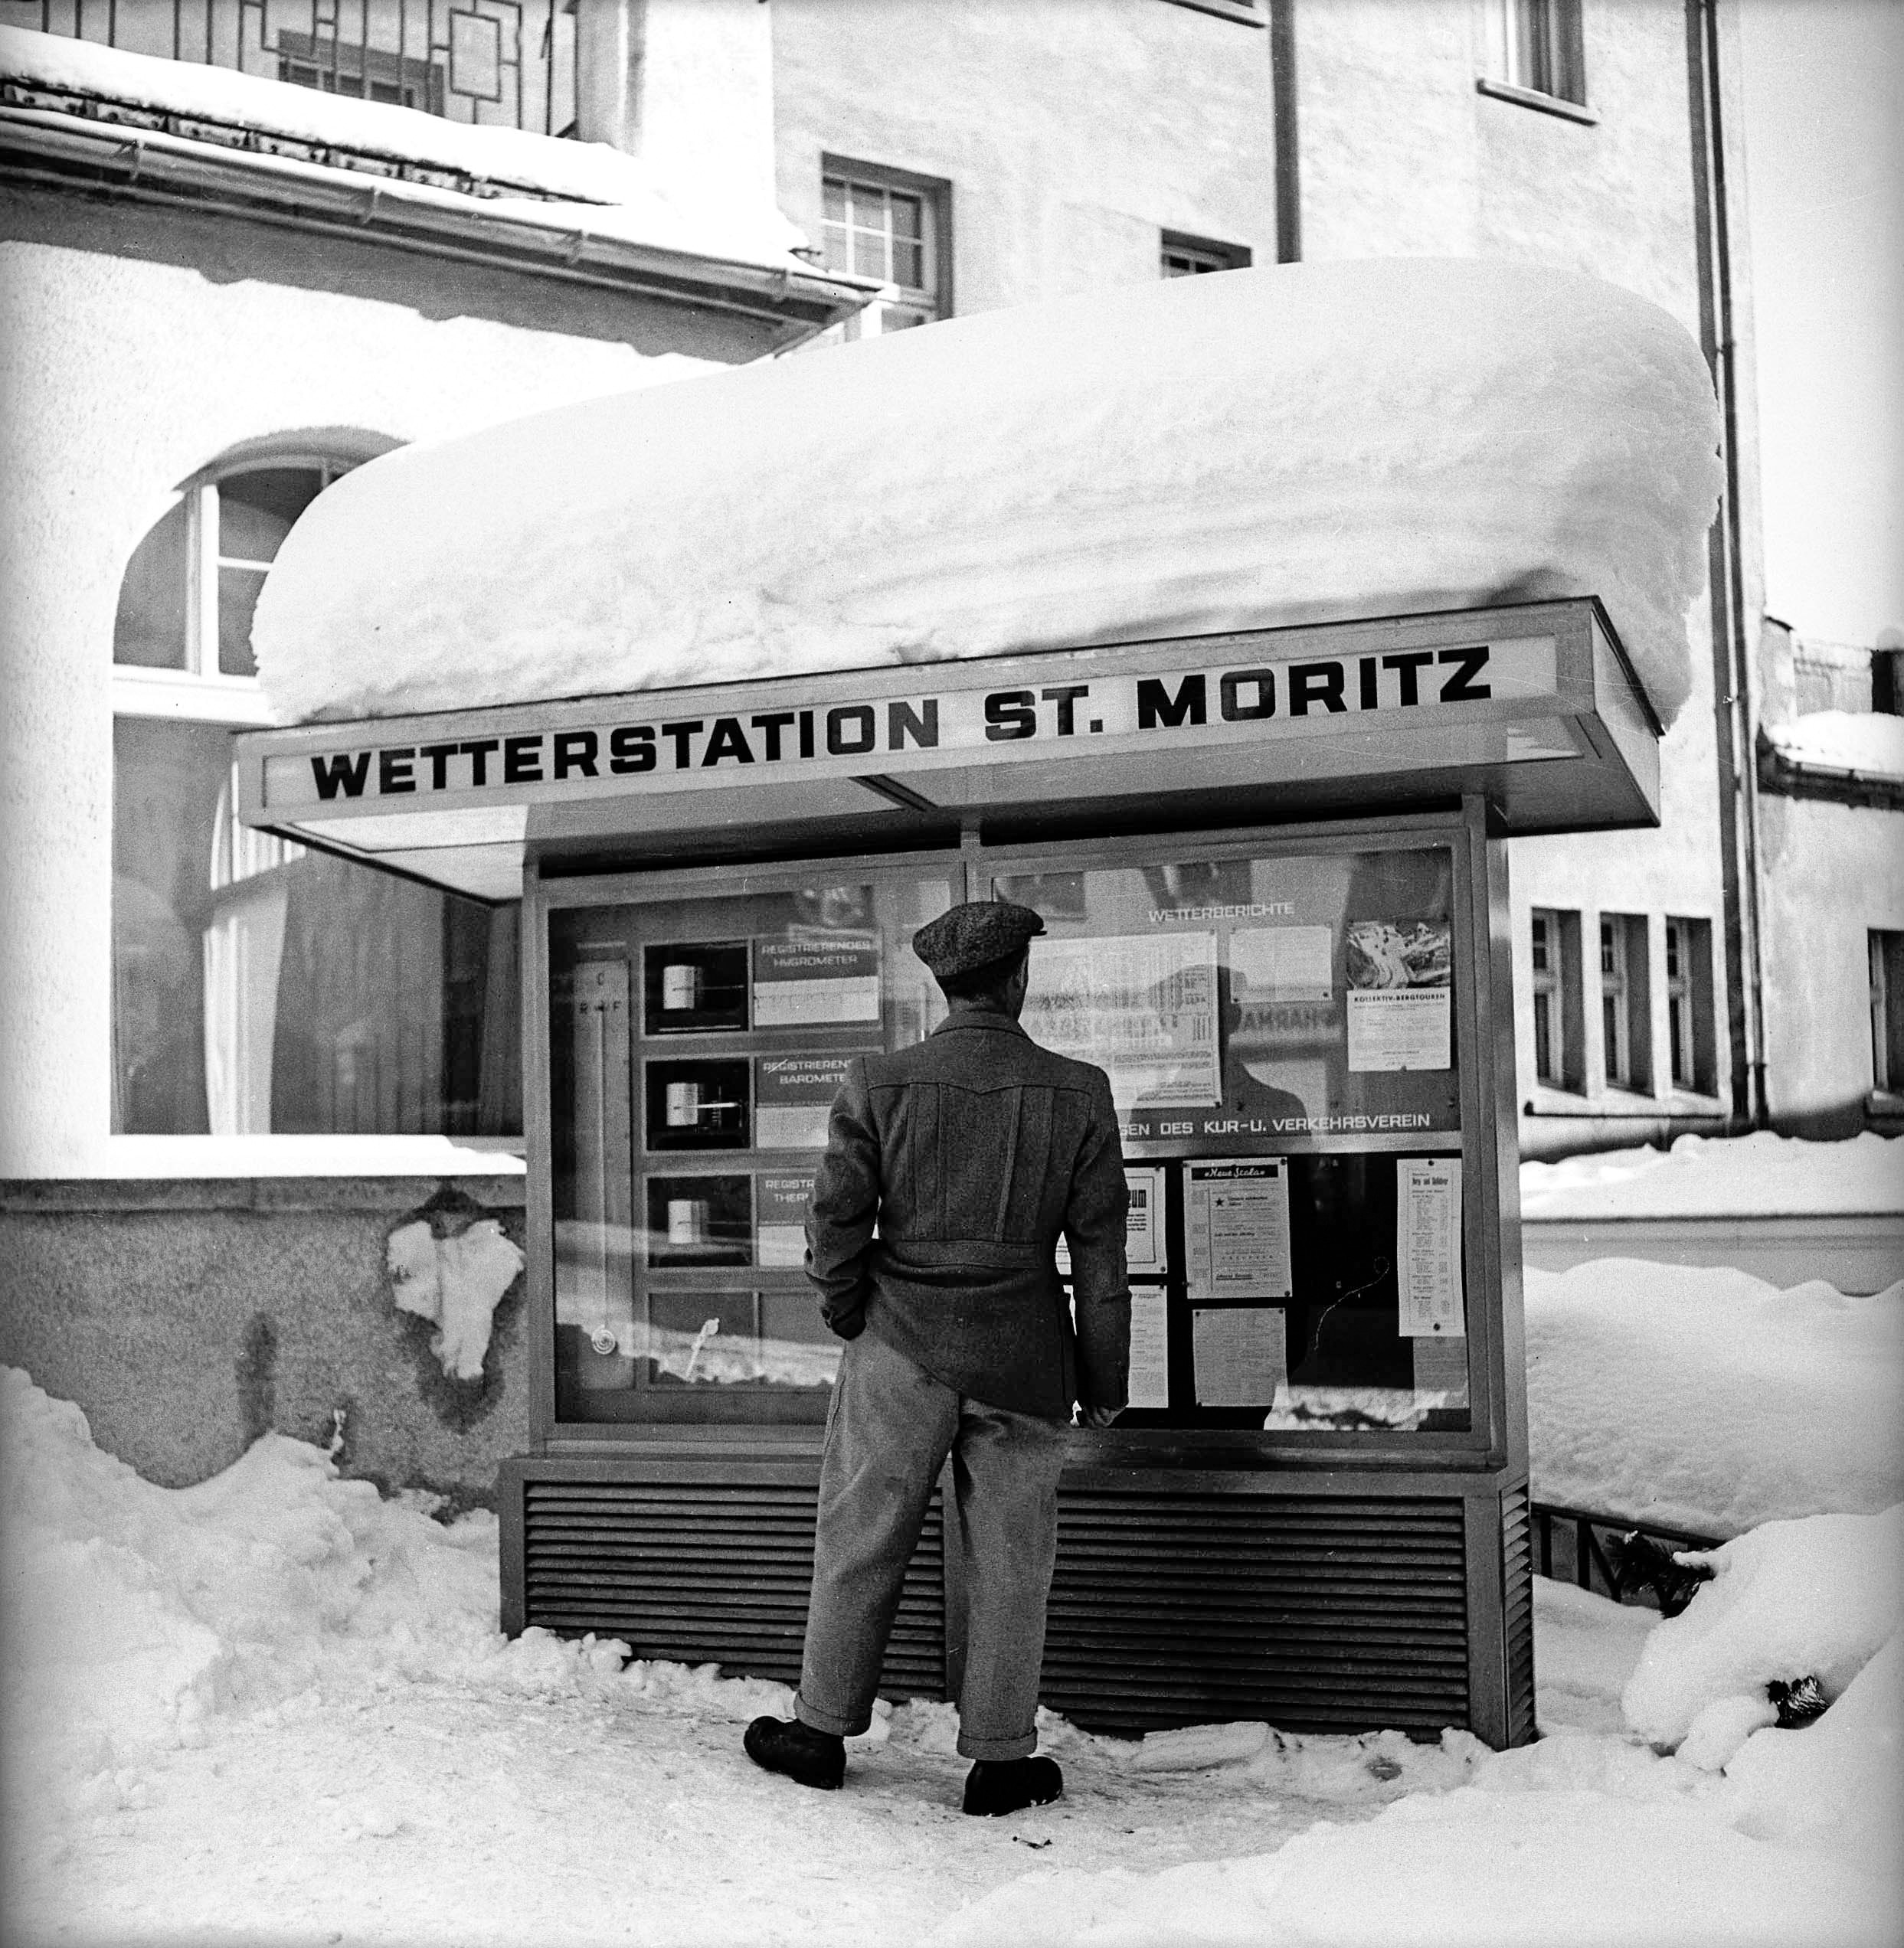 The weather station in St Moritz.